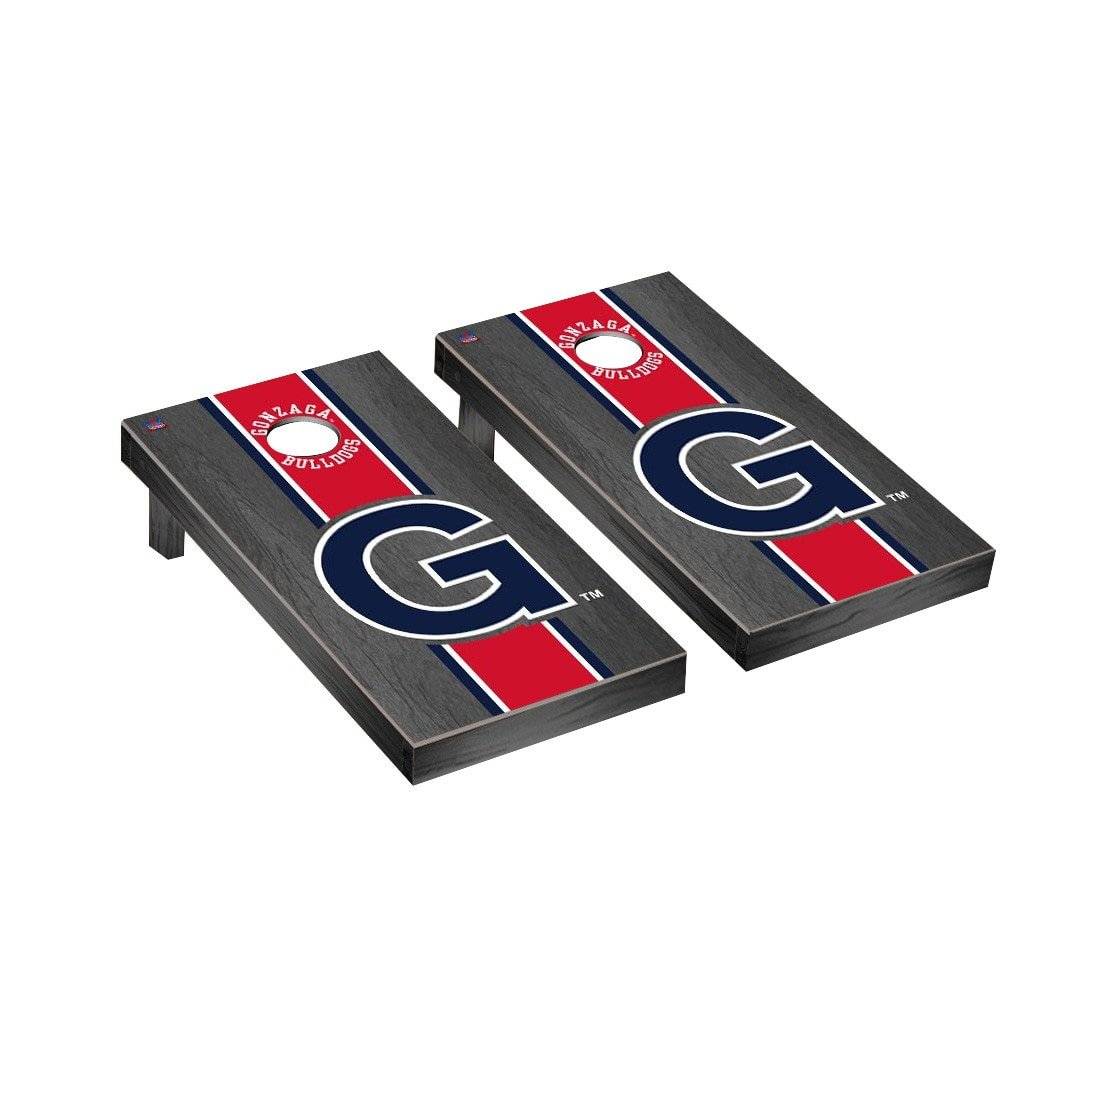 カレッジVault Gonzaga Bulldogs Cornhole Game SetオニキスStainedストライプバージョン B01CGVVPIG Parent